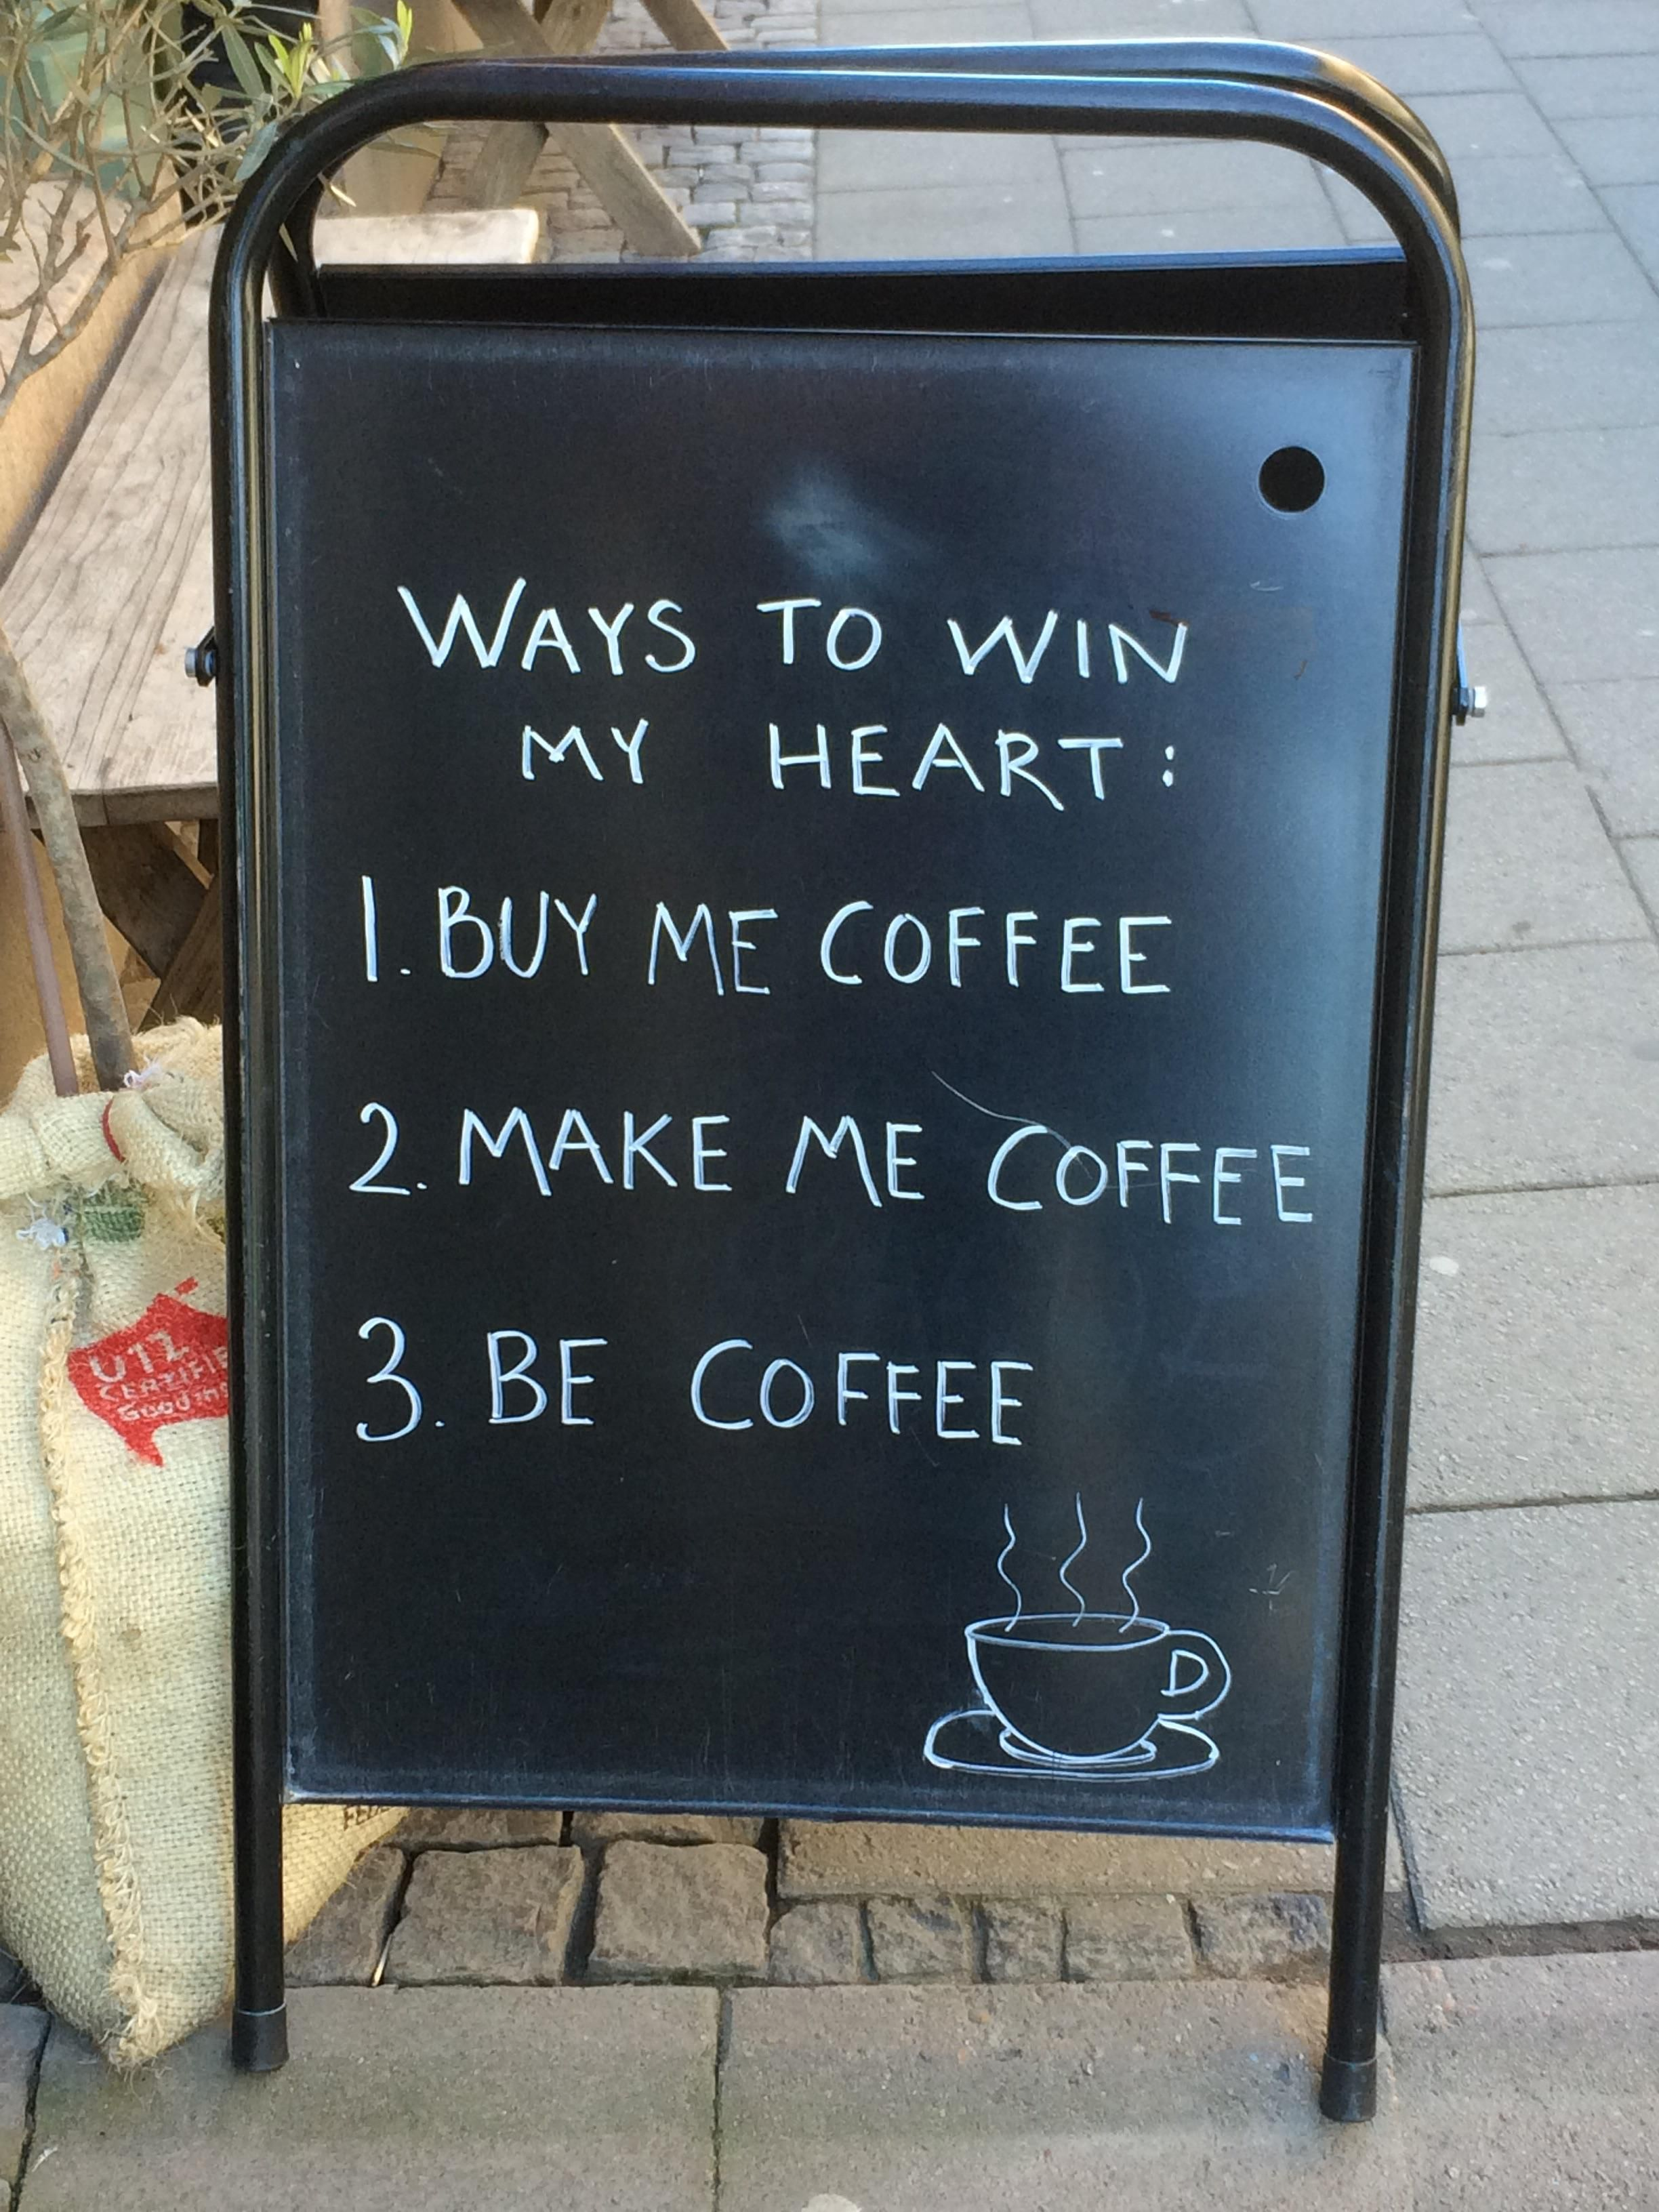 Be coffee.